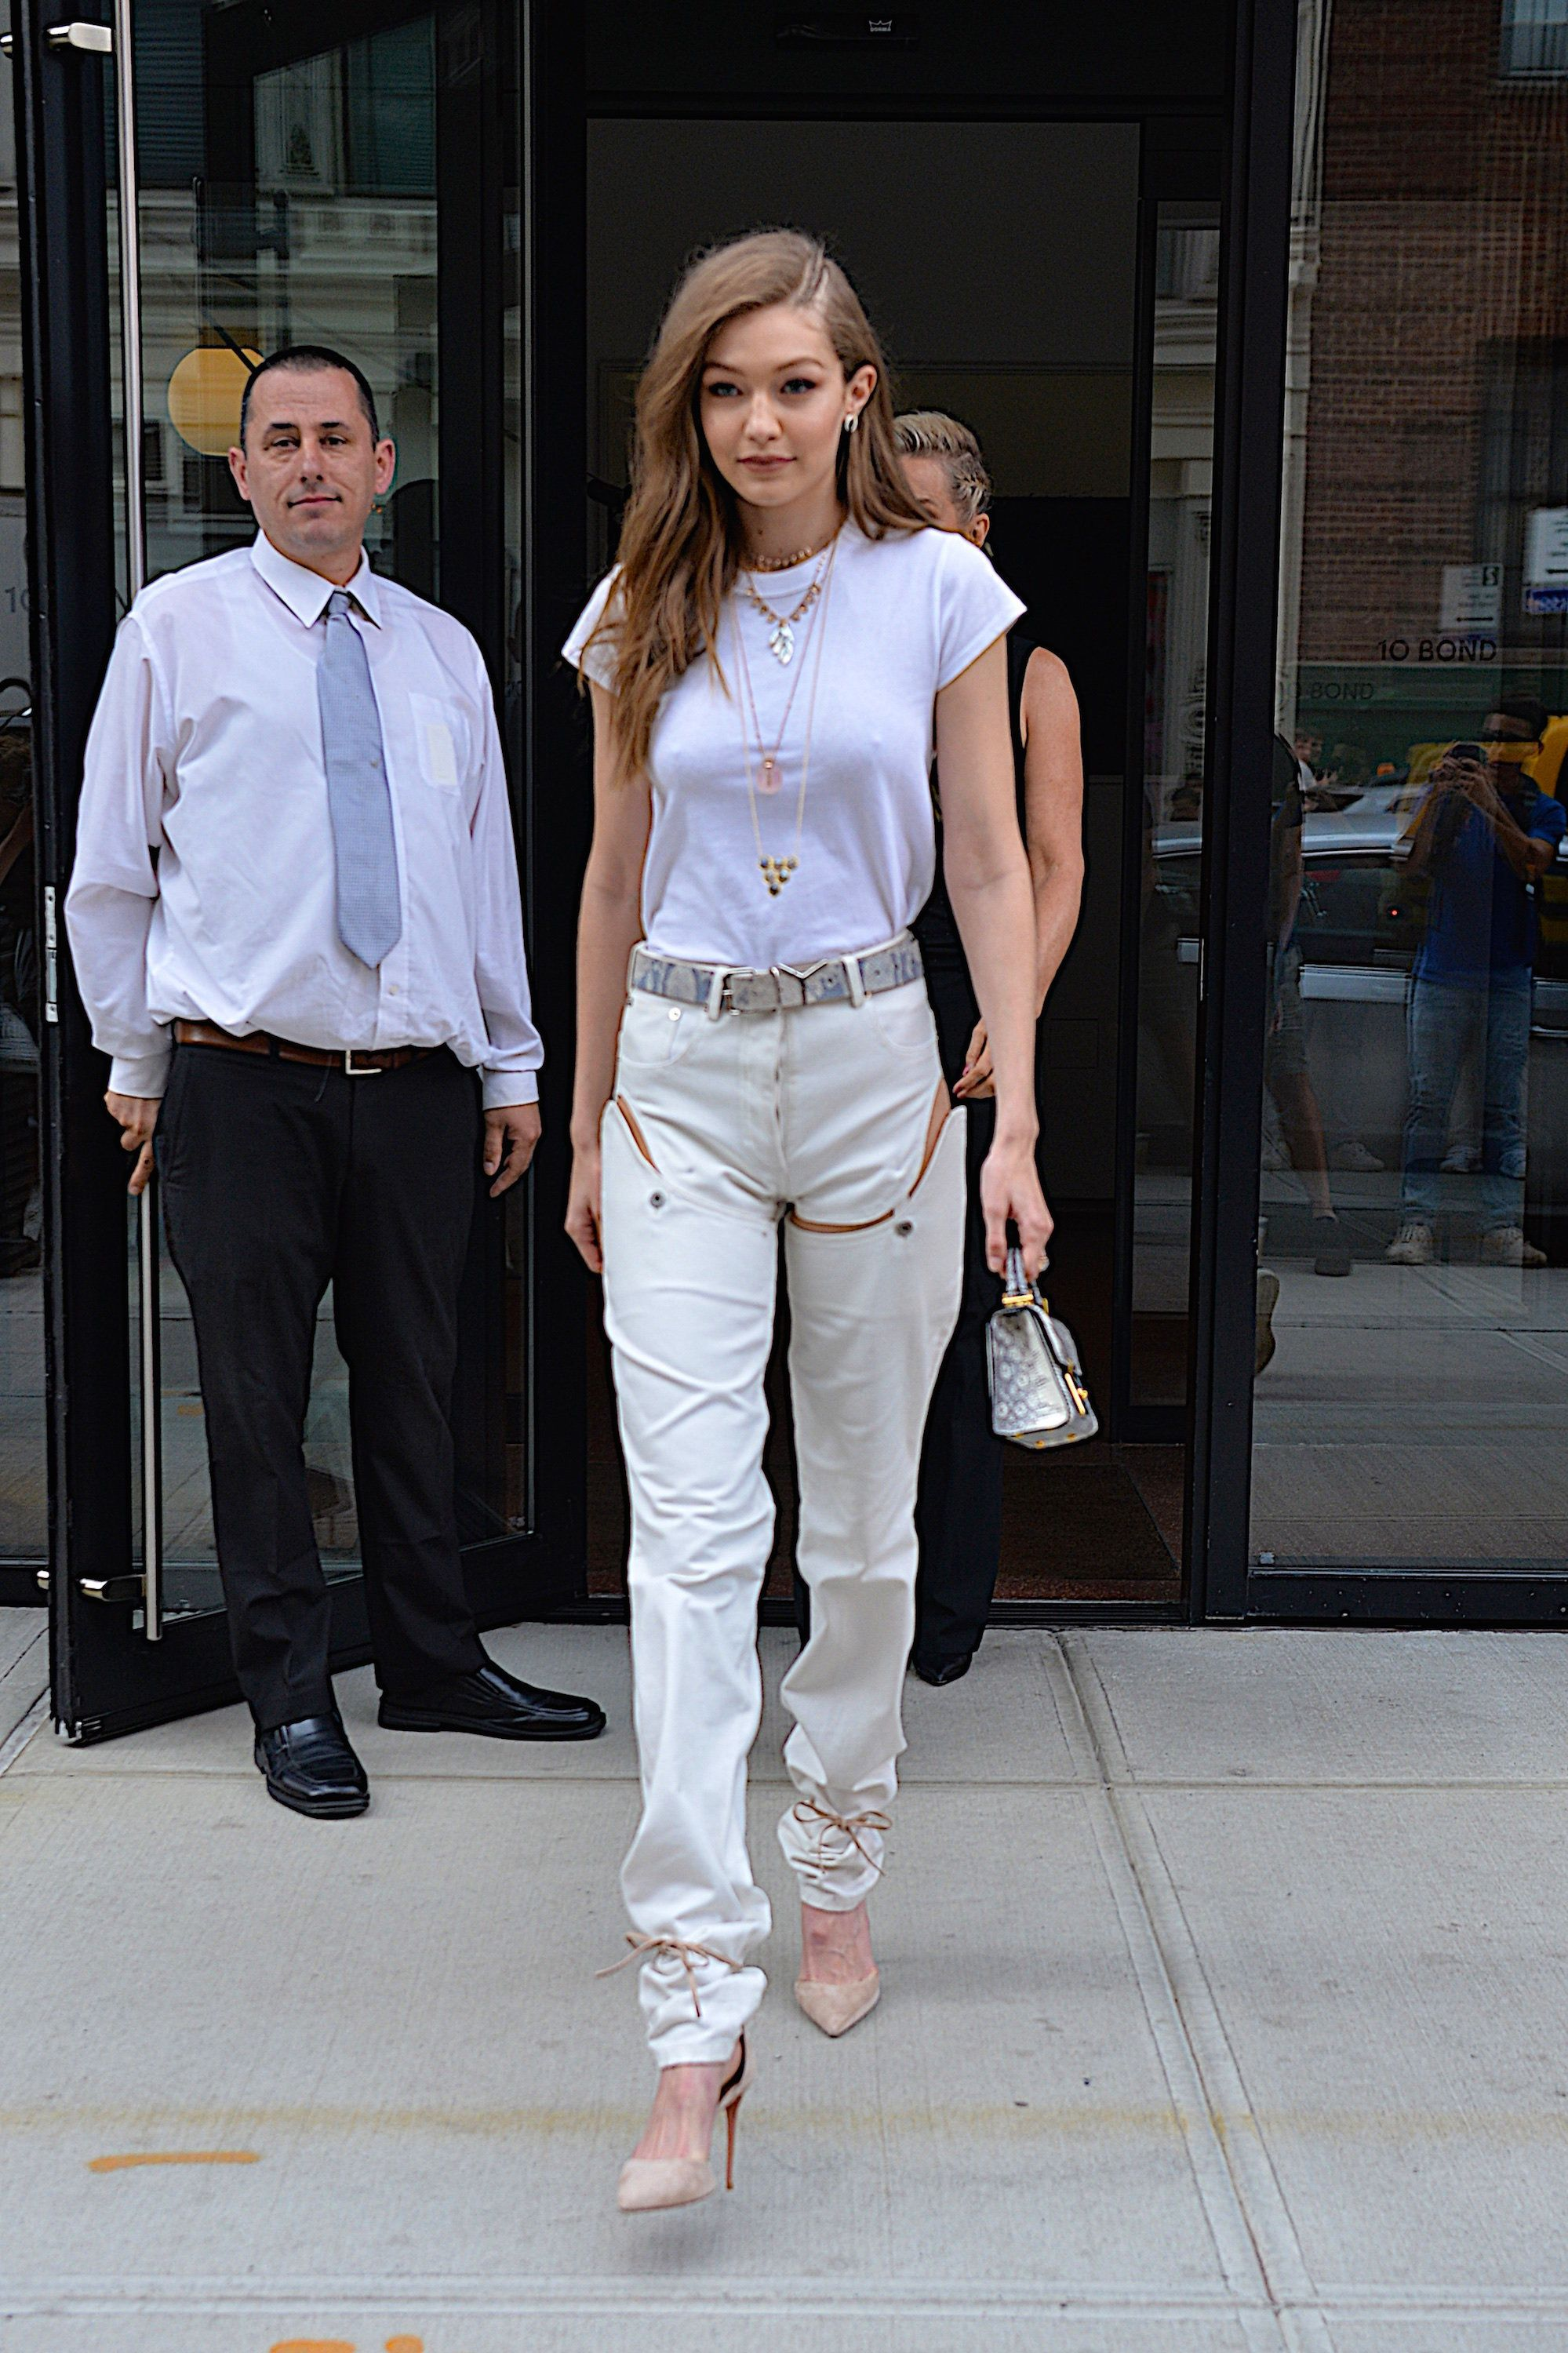 """Hadid wearing<a href=""""https://www.openingceremony.com/womens/y_project/washed-cut-out-detachable-short-jeans-ST96198.ht"""